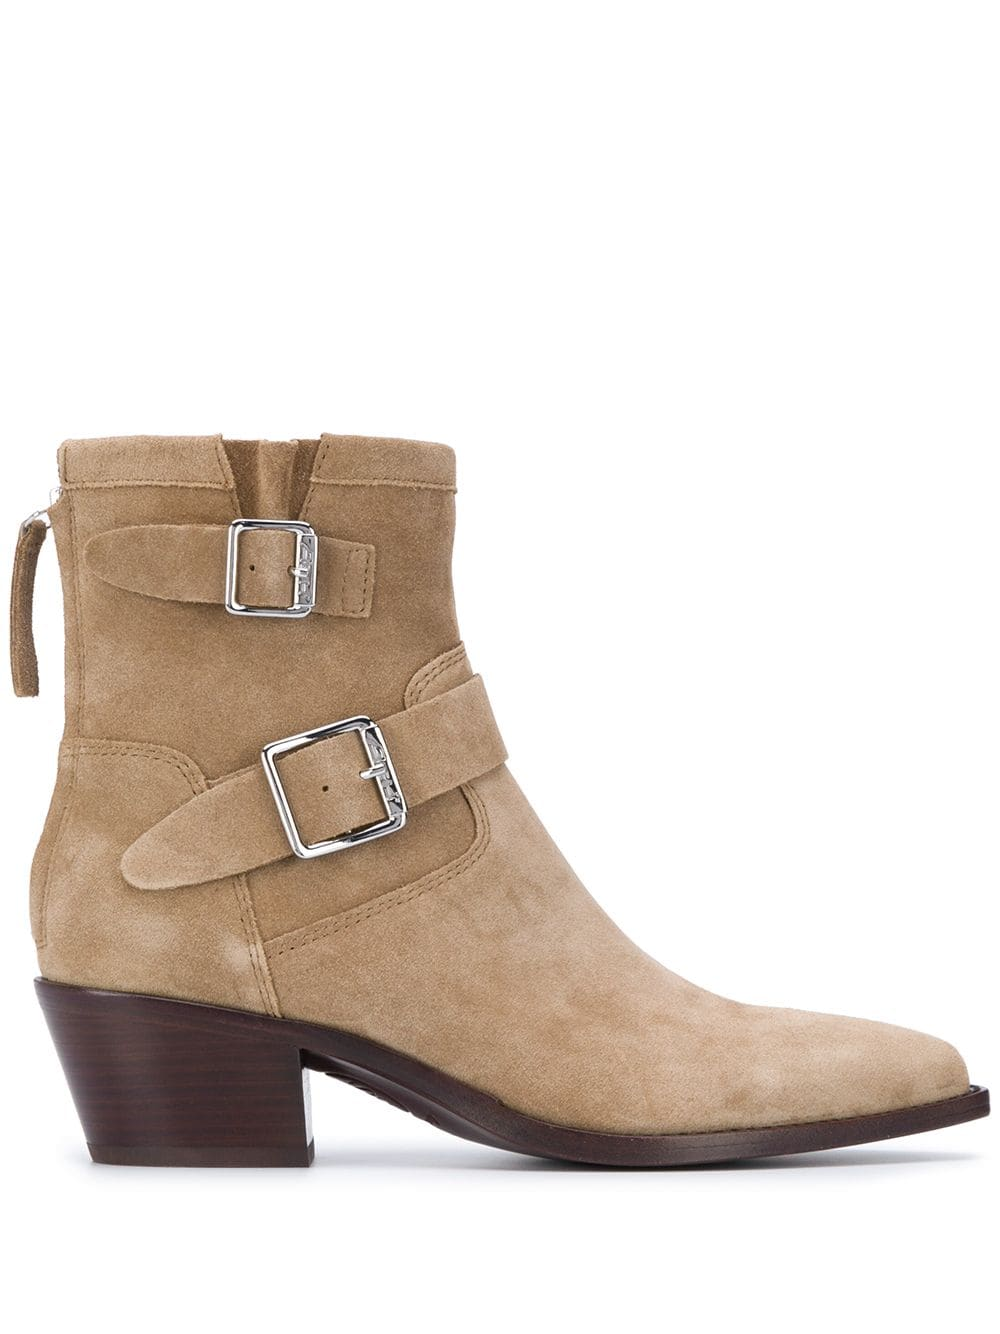 Doors Ankle Boots